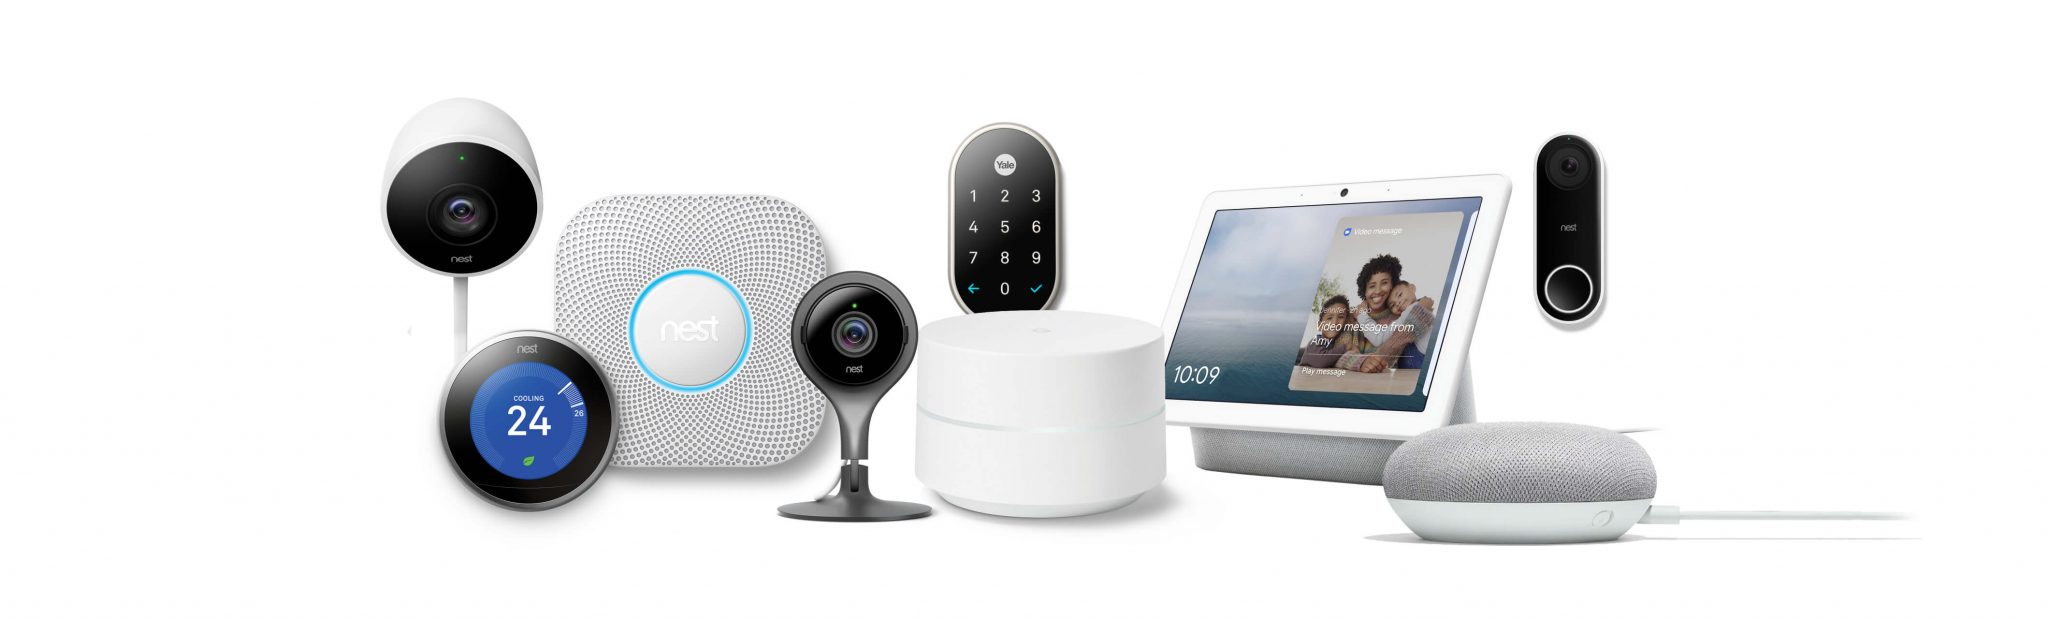 Smart Home Bundle Products